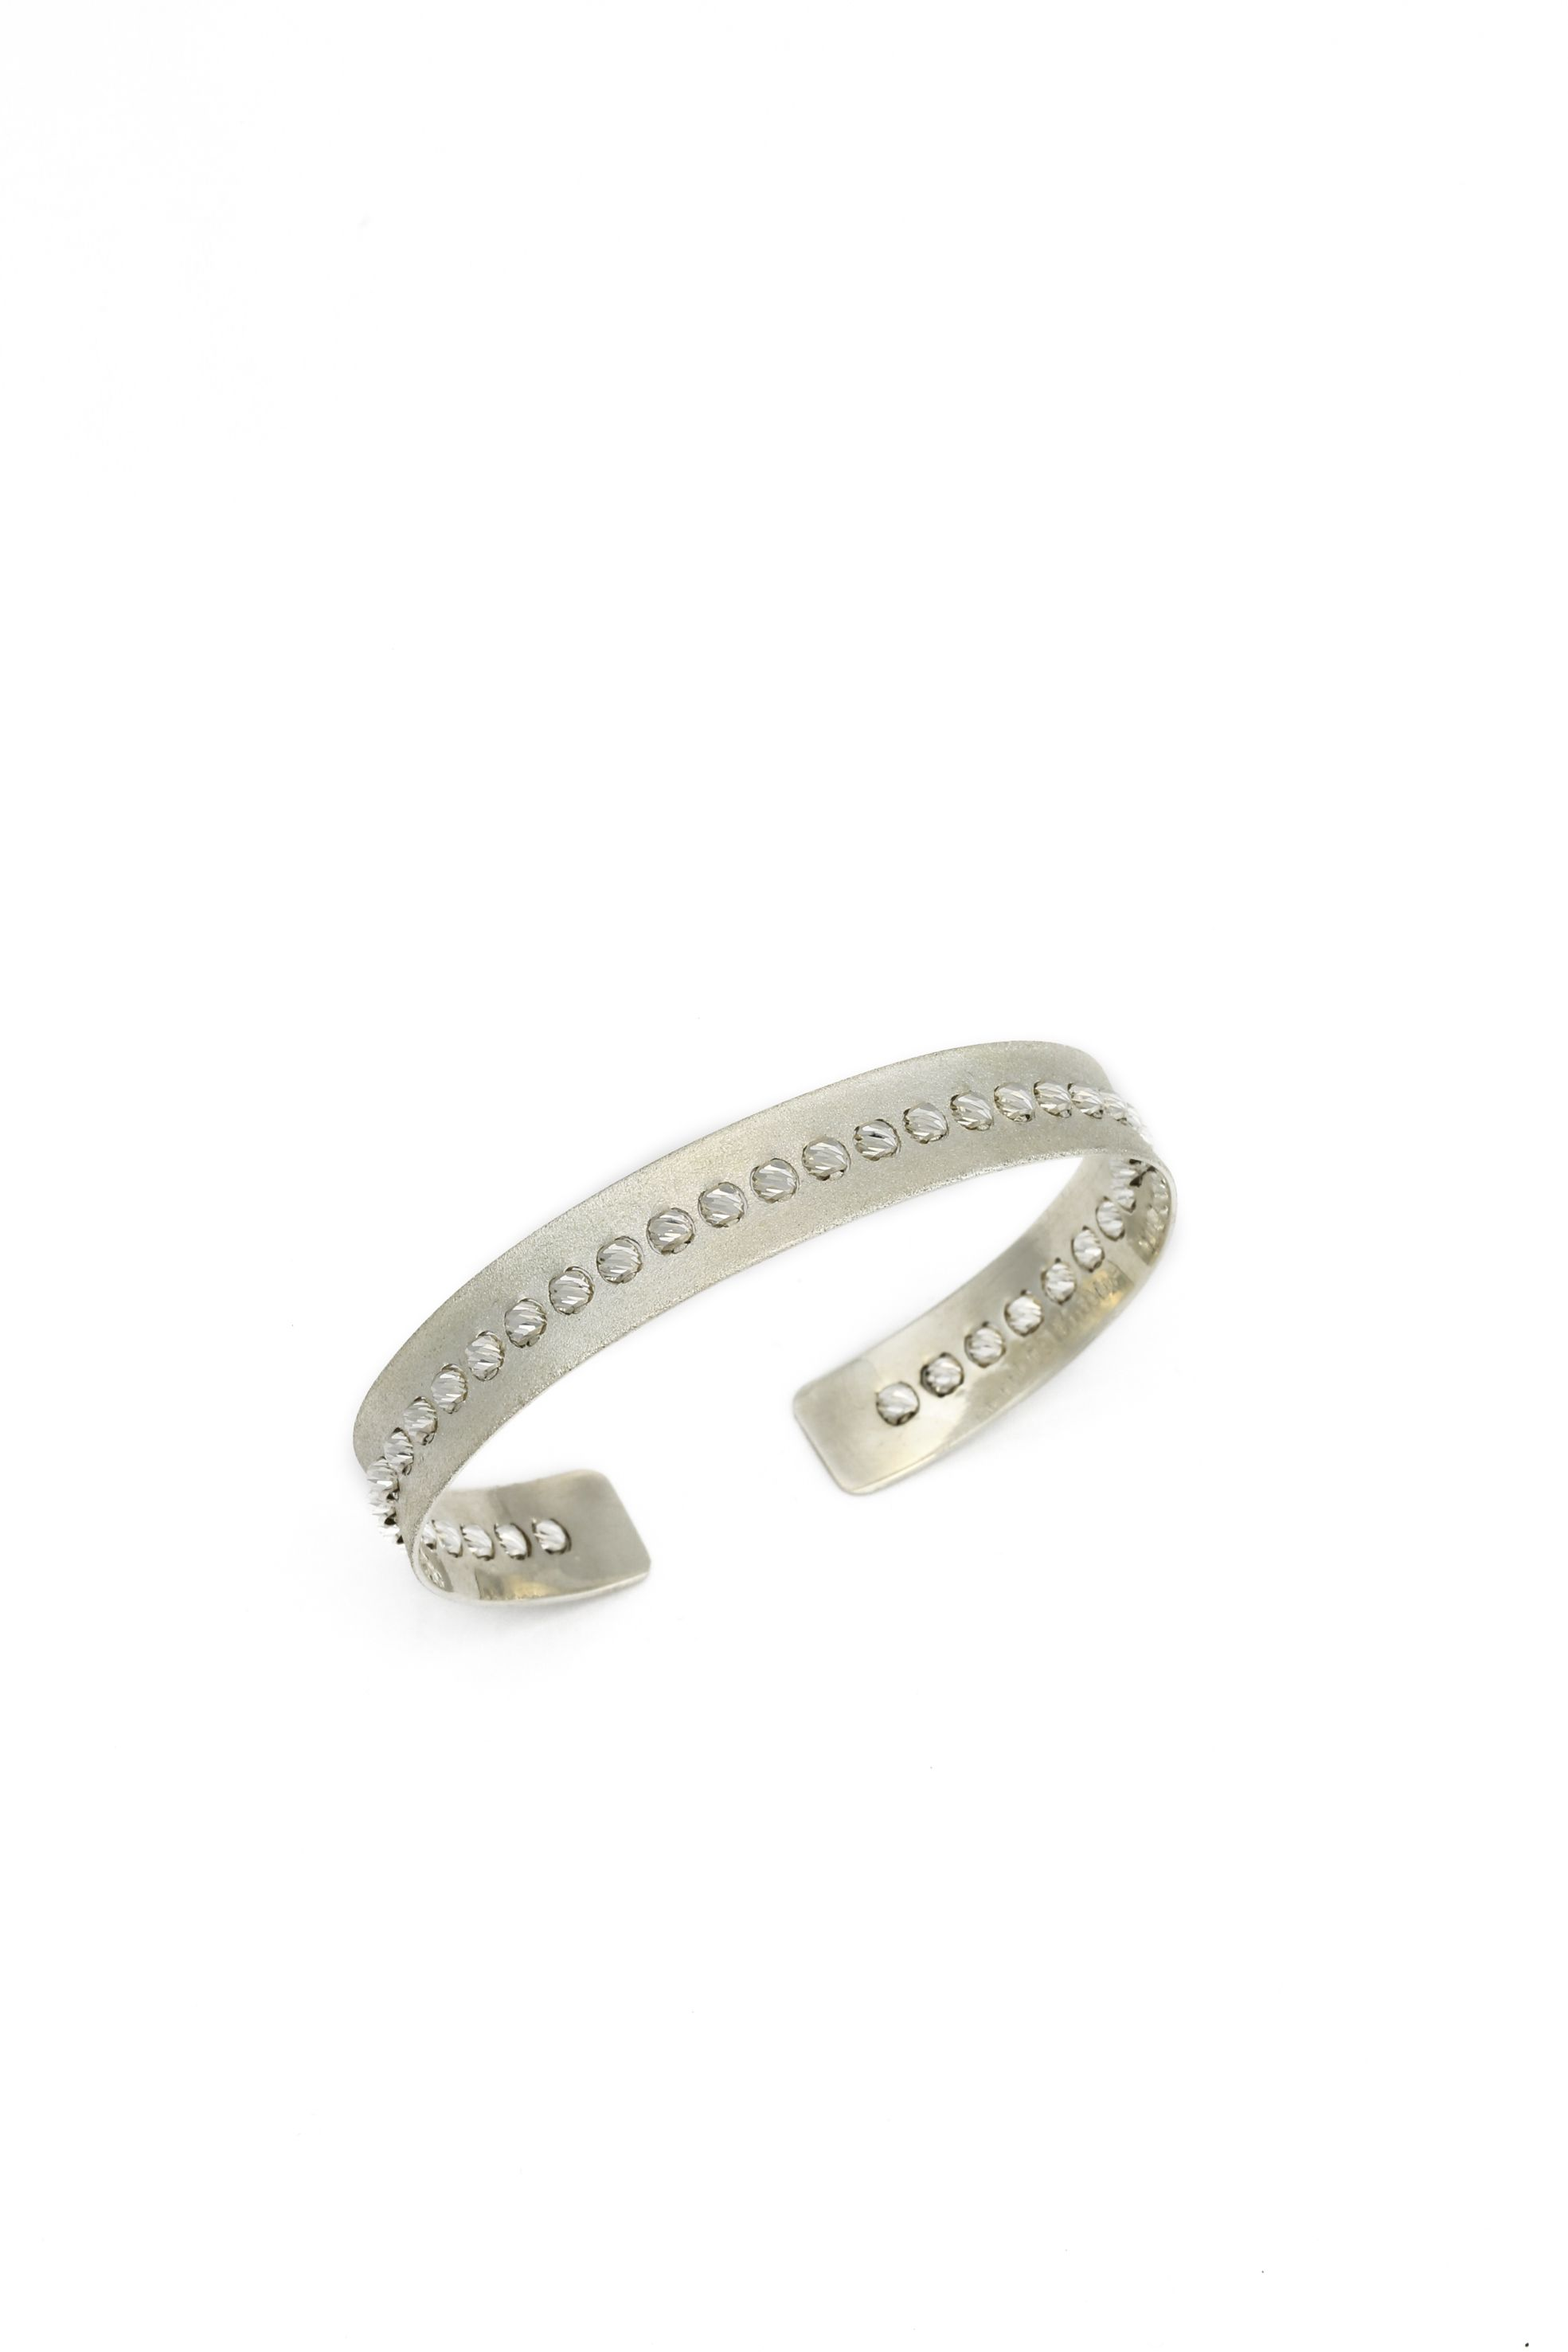 Handmade diamond cut platinum bracelet